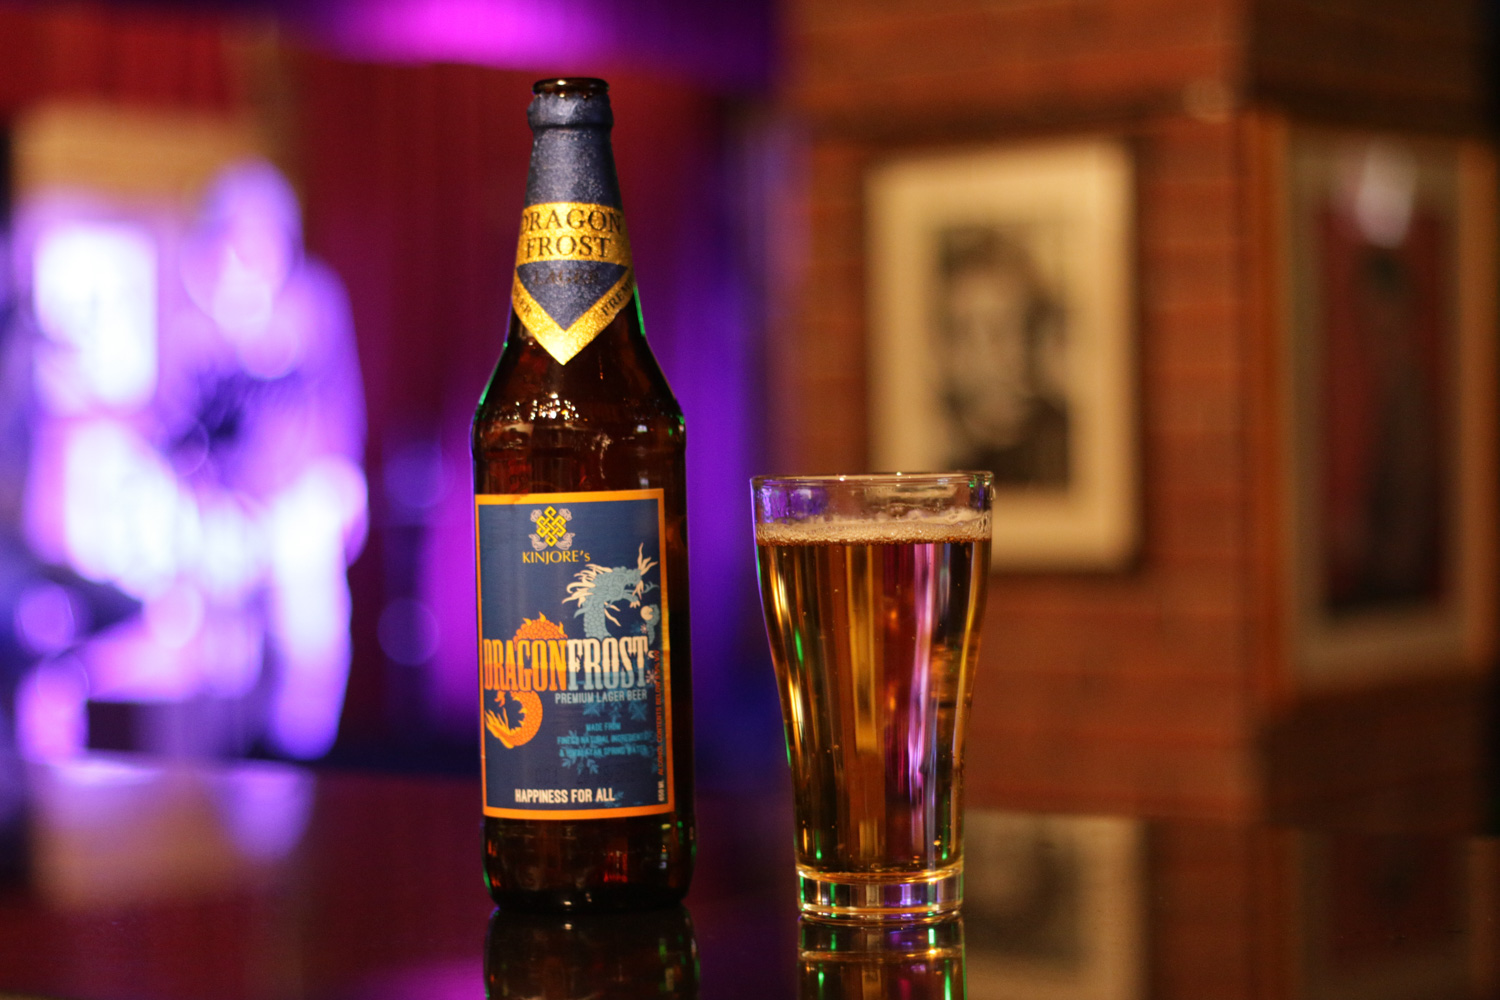 DragonFrost got the coolest name of all beers in Bhutan, but it´s not the best tasting one.